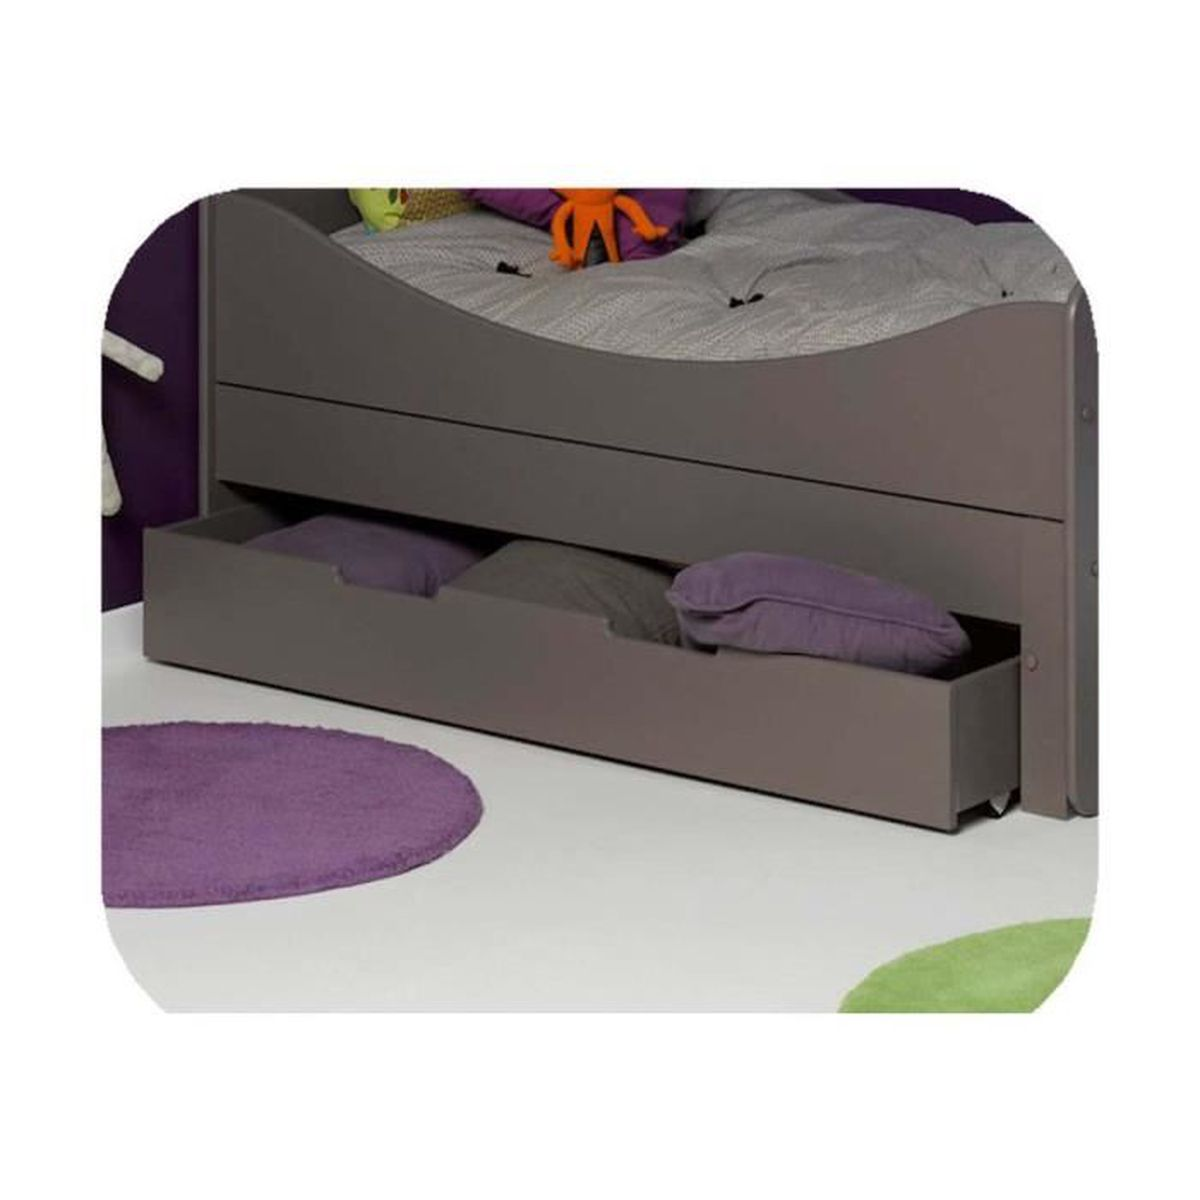 tiroir pour lit enfant evolutif eden 90x140 cm taupe. Black Bedroom Furniture Sets. Home Design Ideas